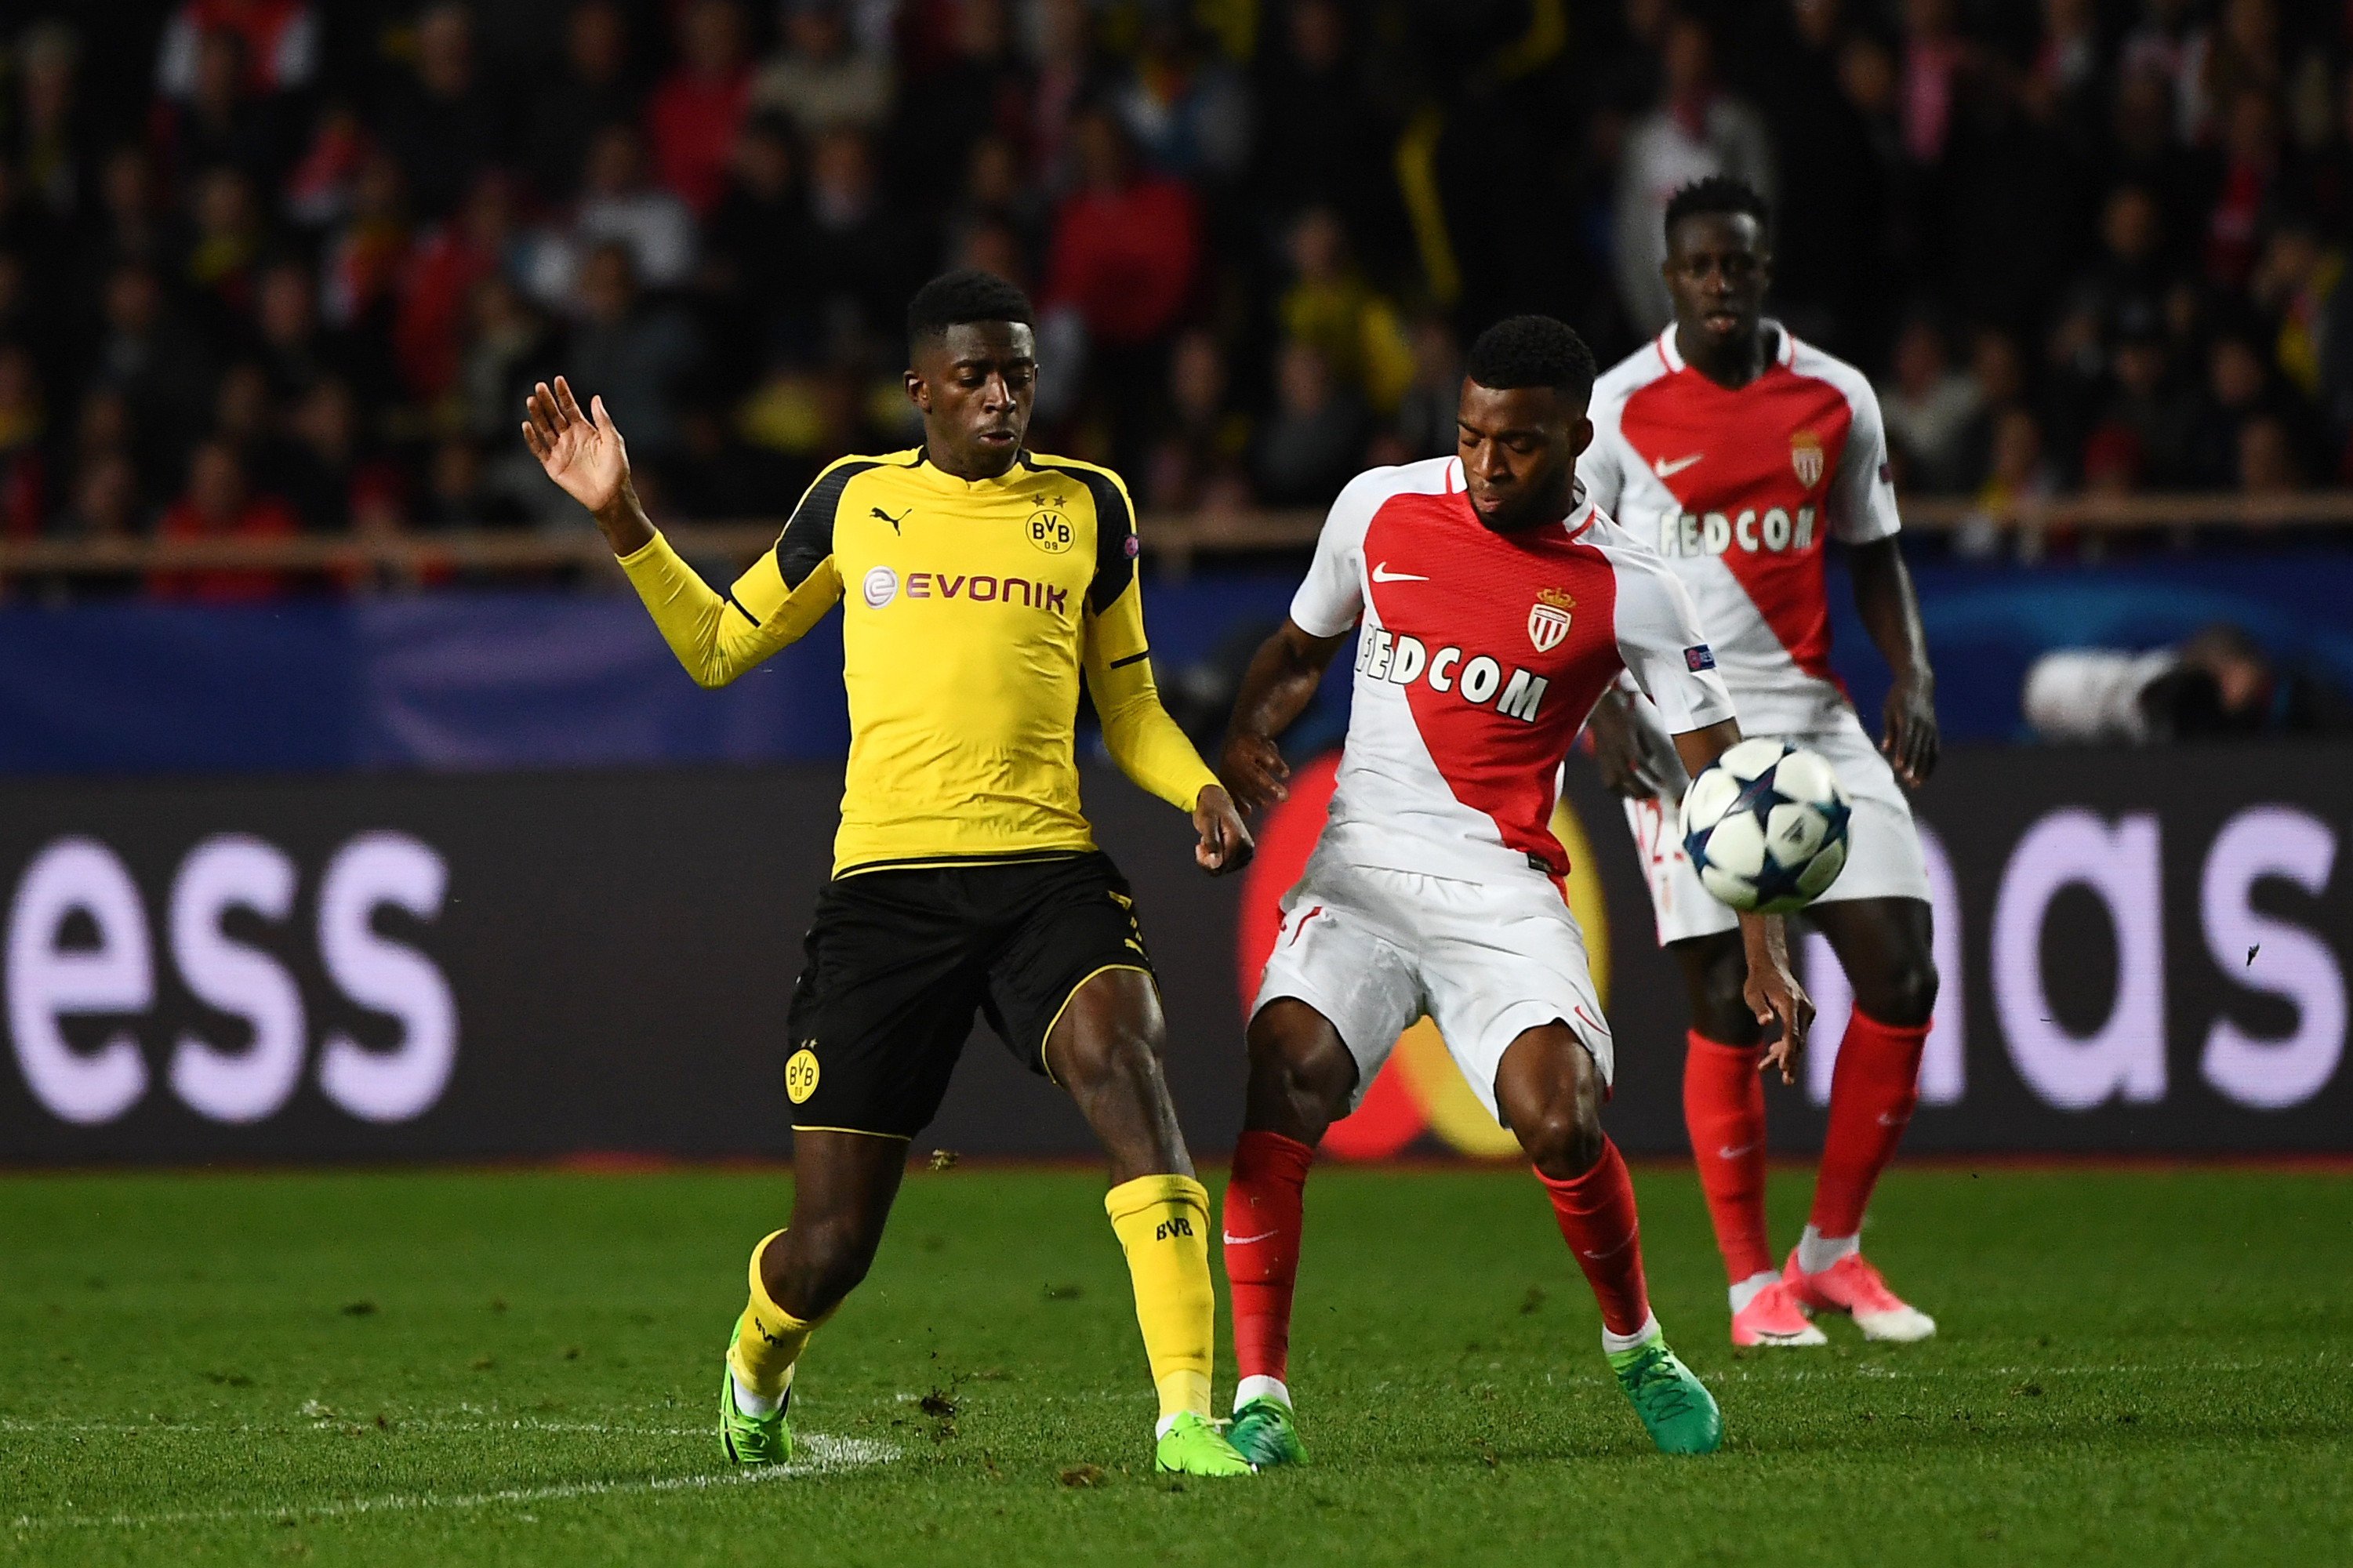 Barcelona Transfer News: Latest Rumours on Ousmane Dembele